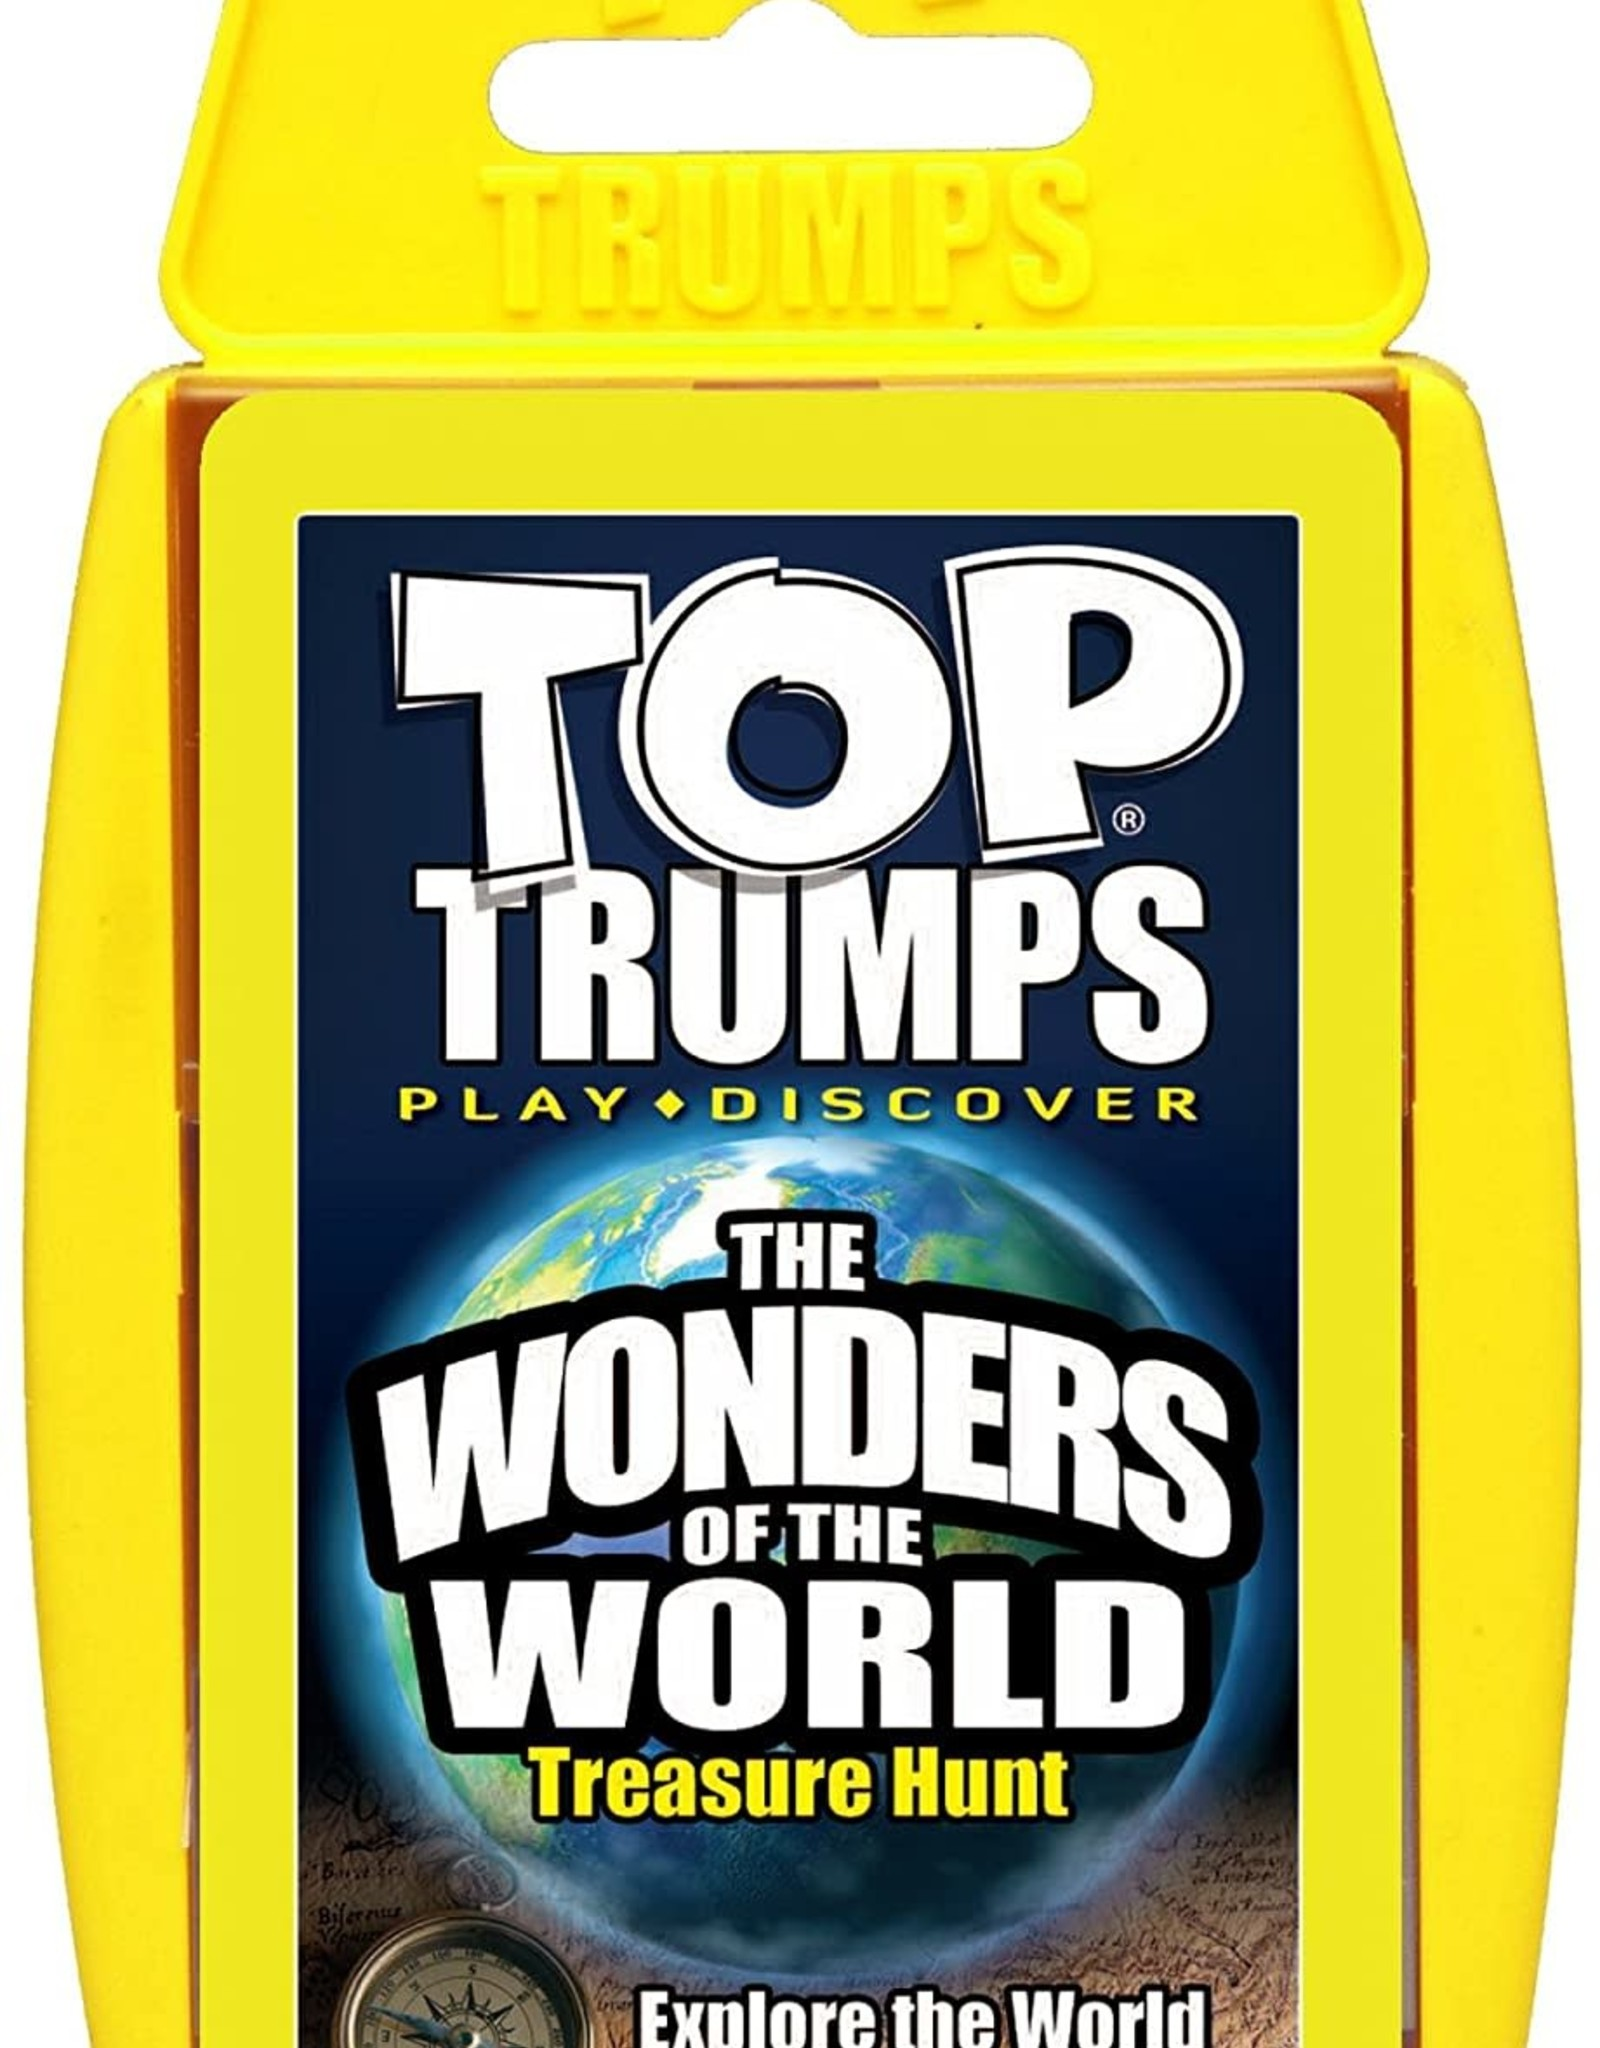 Top Trumps Wonders of the World